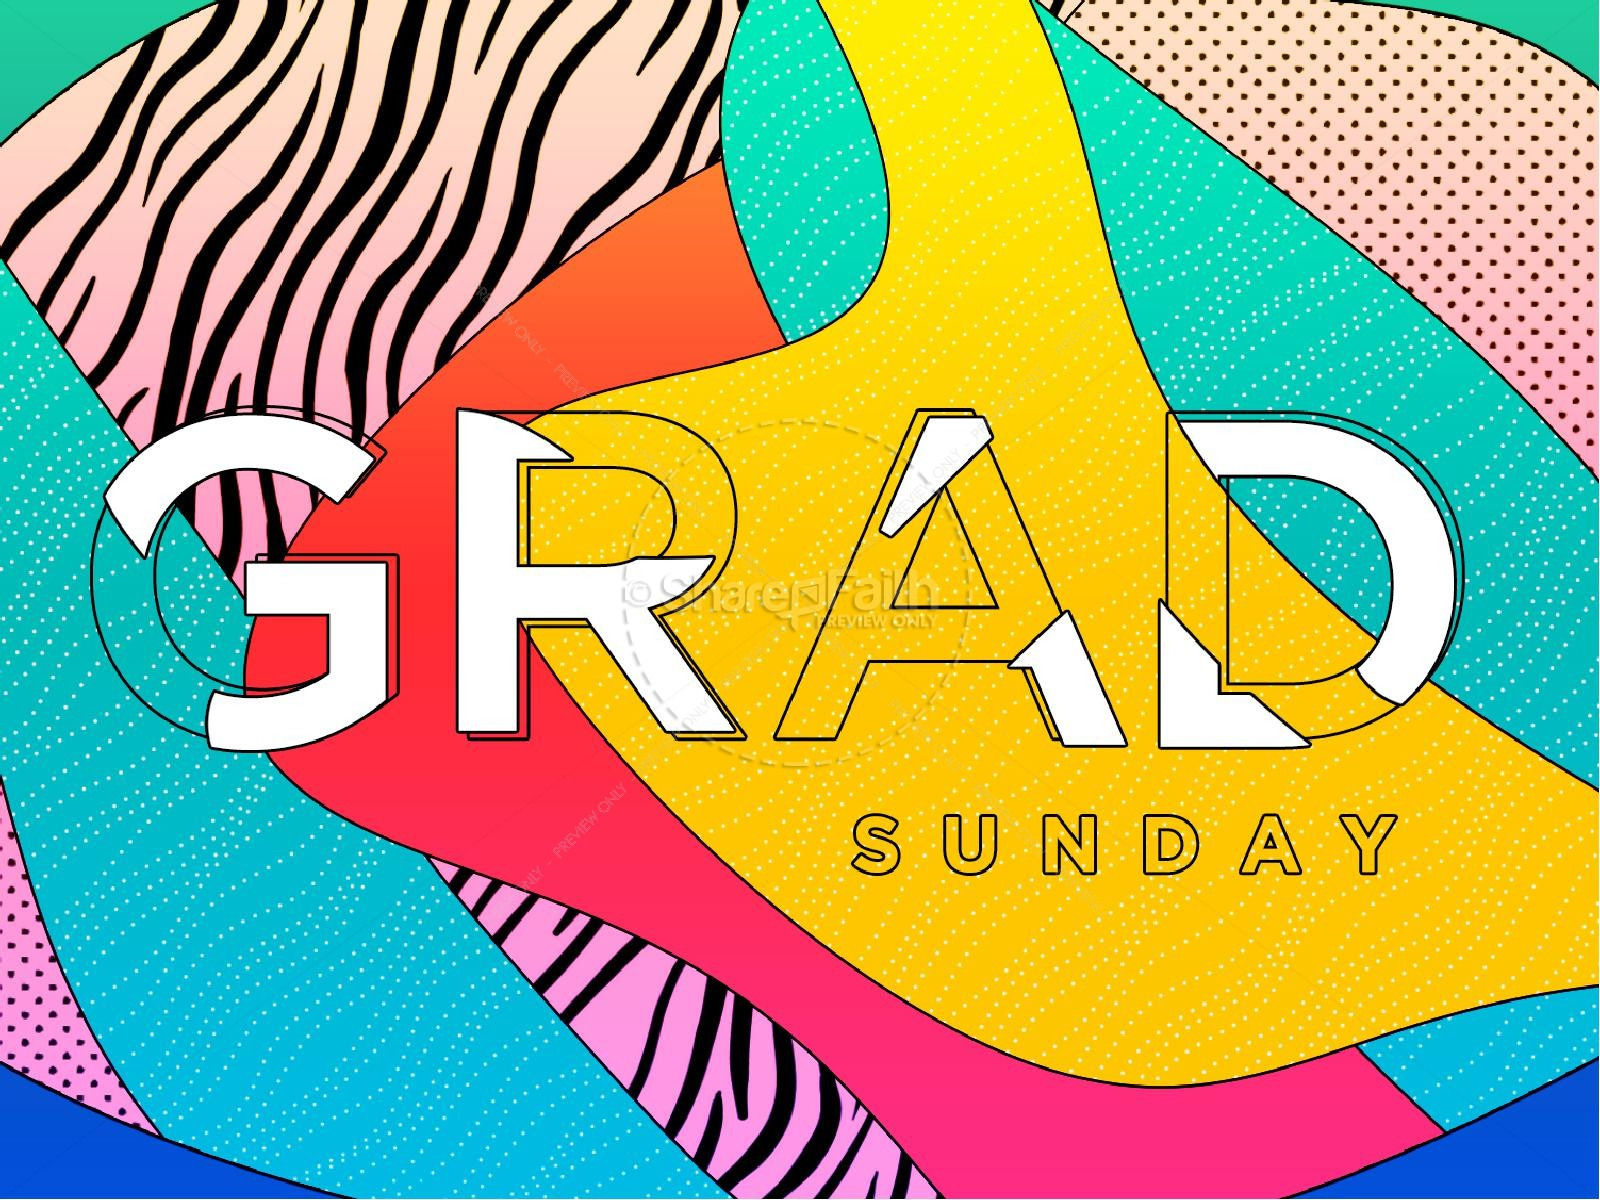 Graduation Sunday Abstract Graphic Design